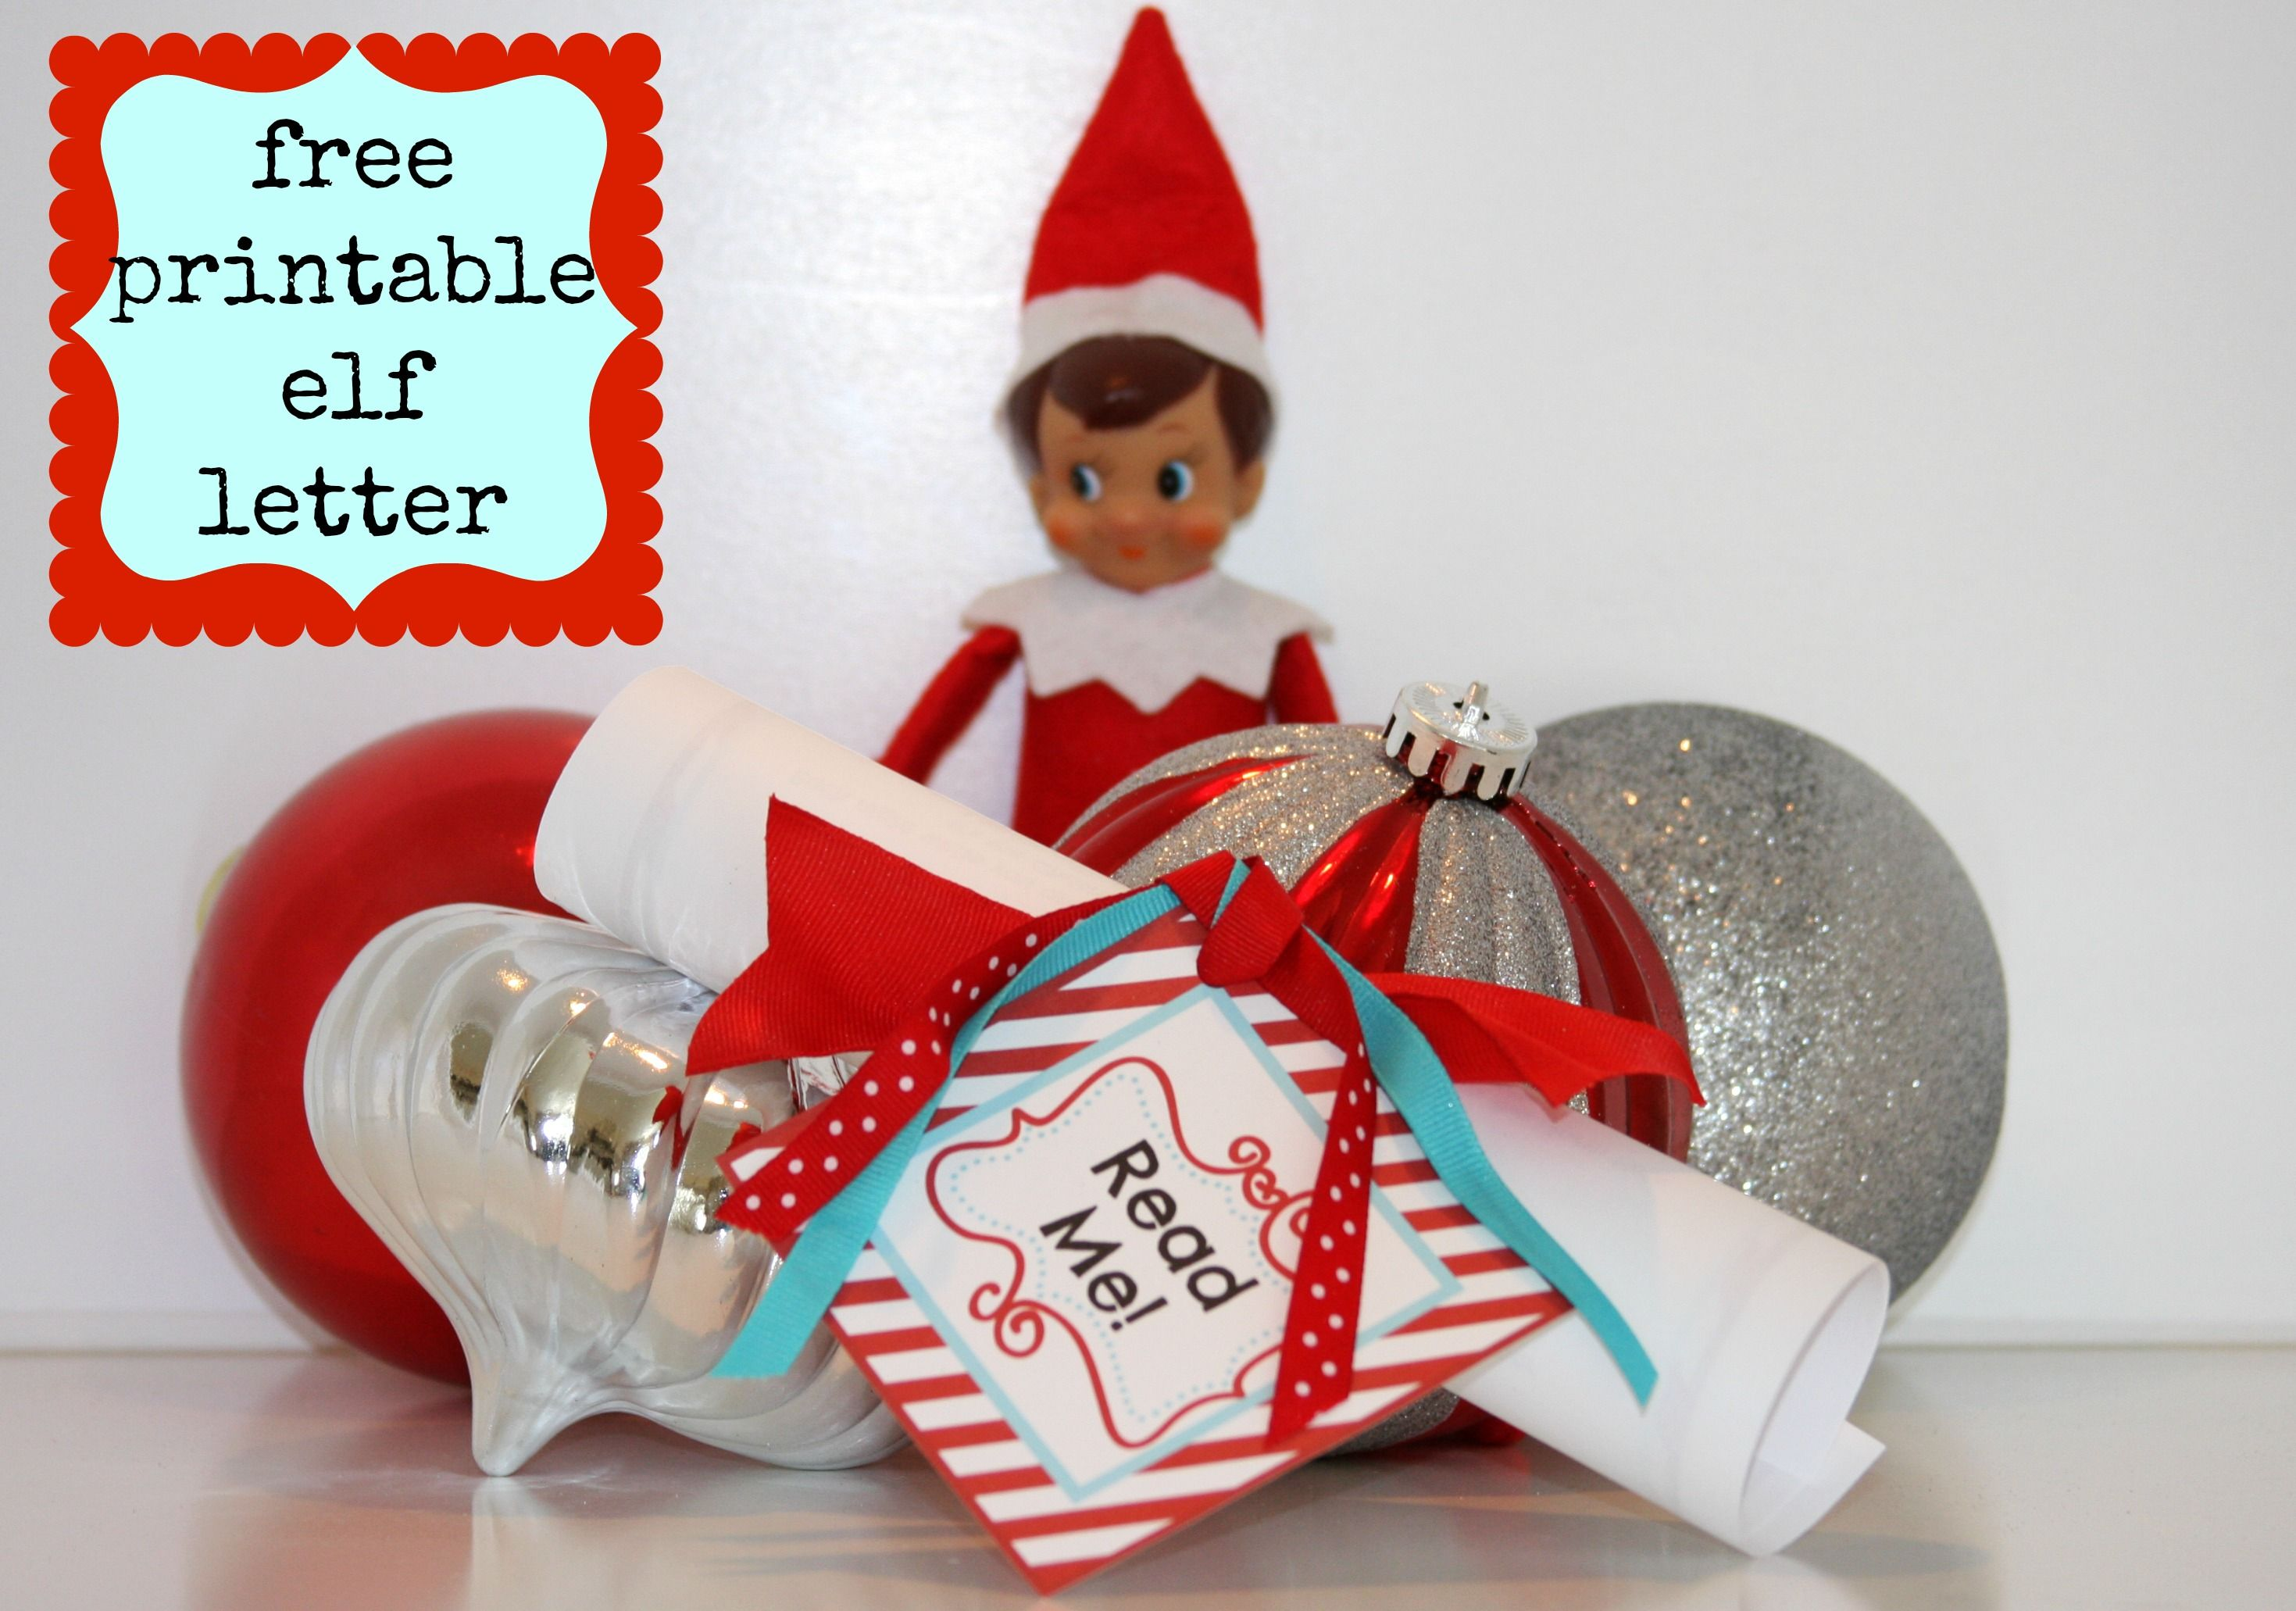 Free Printable Elf Letter | Christmas | Pinterest | Elves, Free